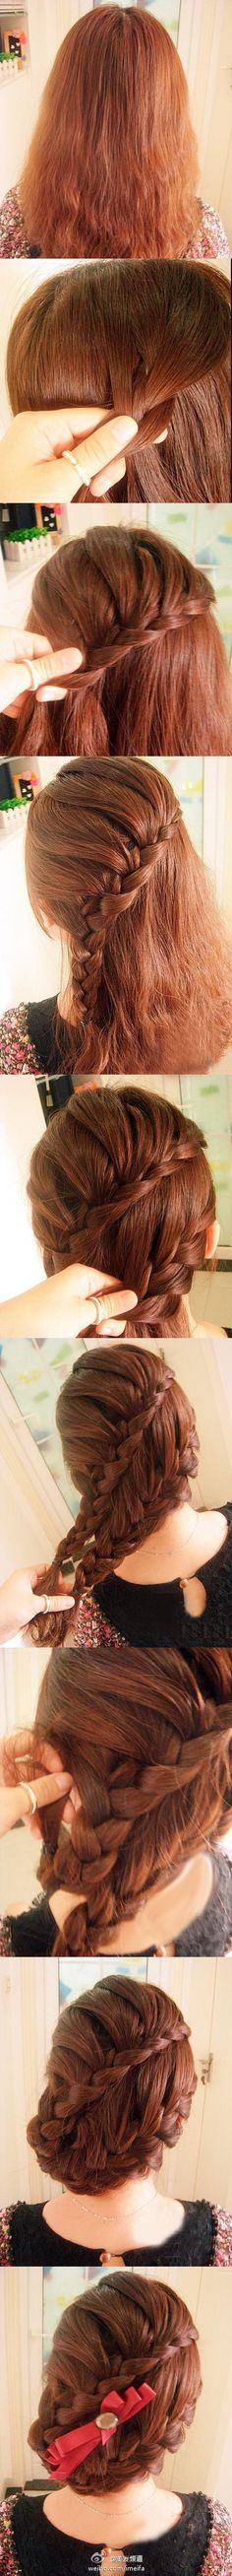 Fancy braiding